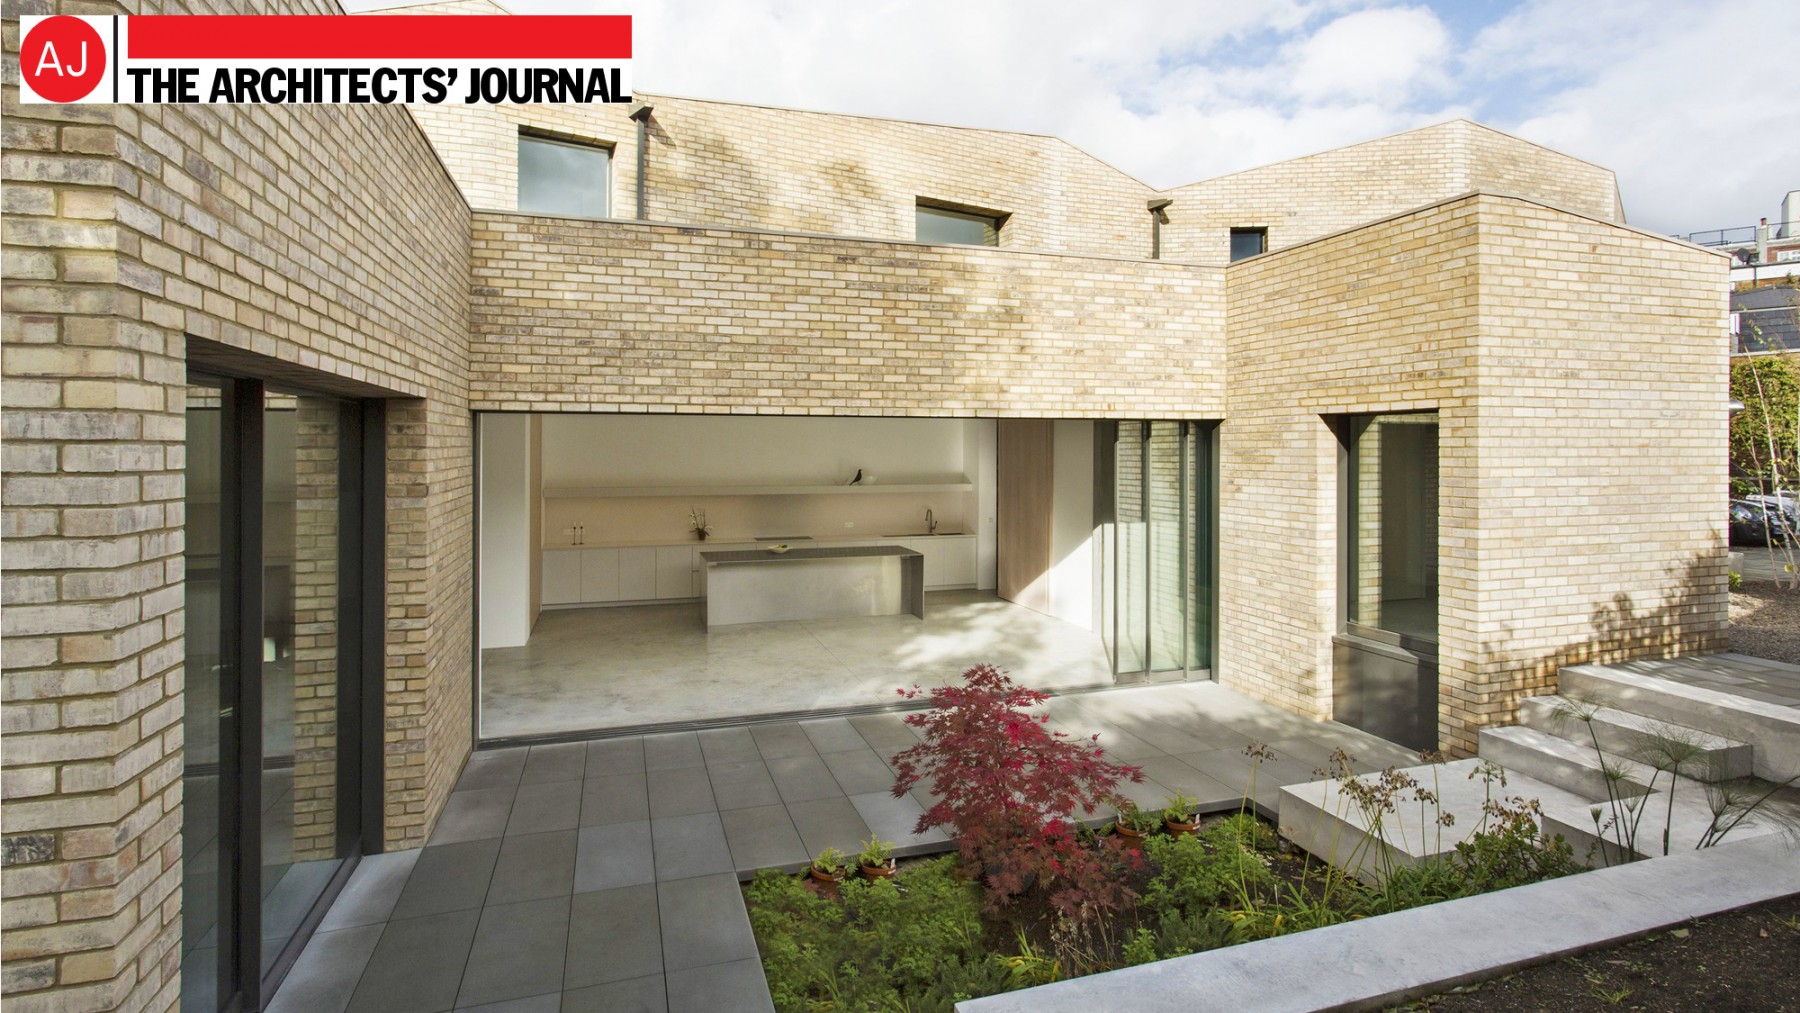 Luker-House-contemporary-modern-London-house-Barnes-Jamie-Fobert-Architects-RIBA-Award-Manser-Medal-Shortlist-AJ-Architects-Journal